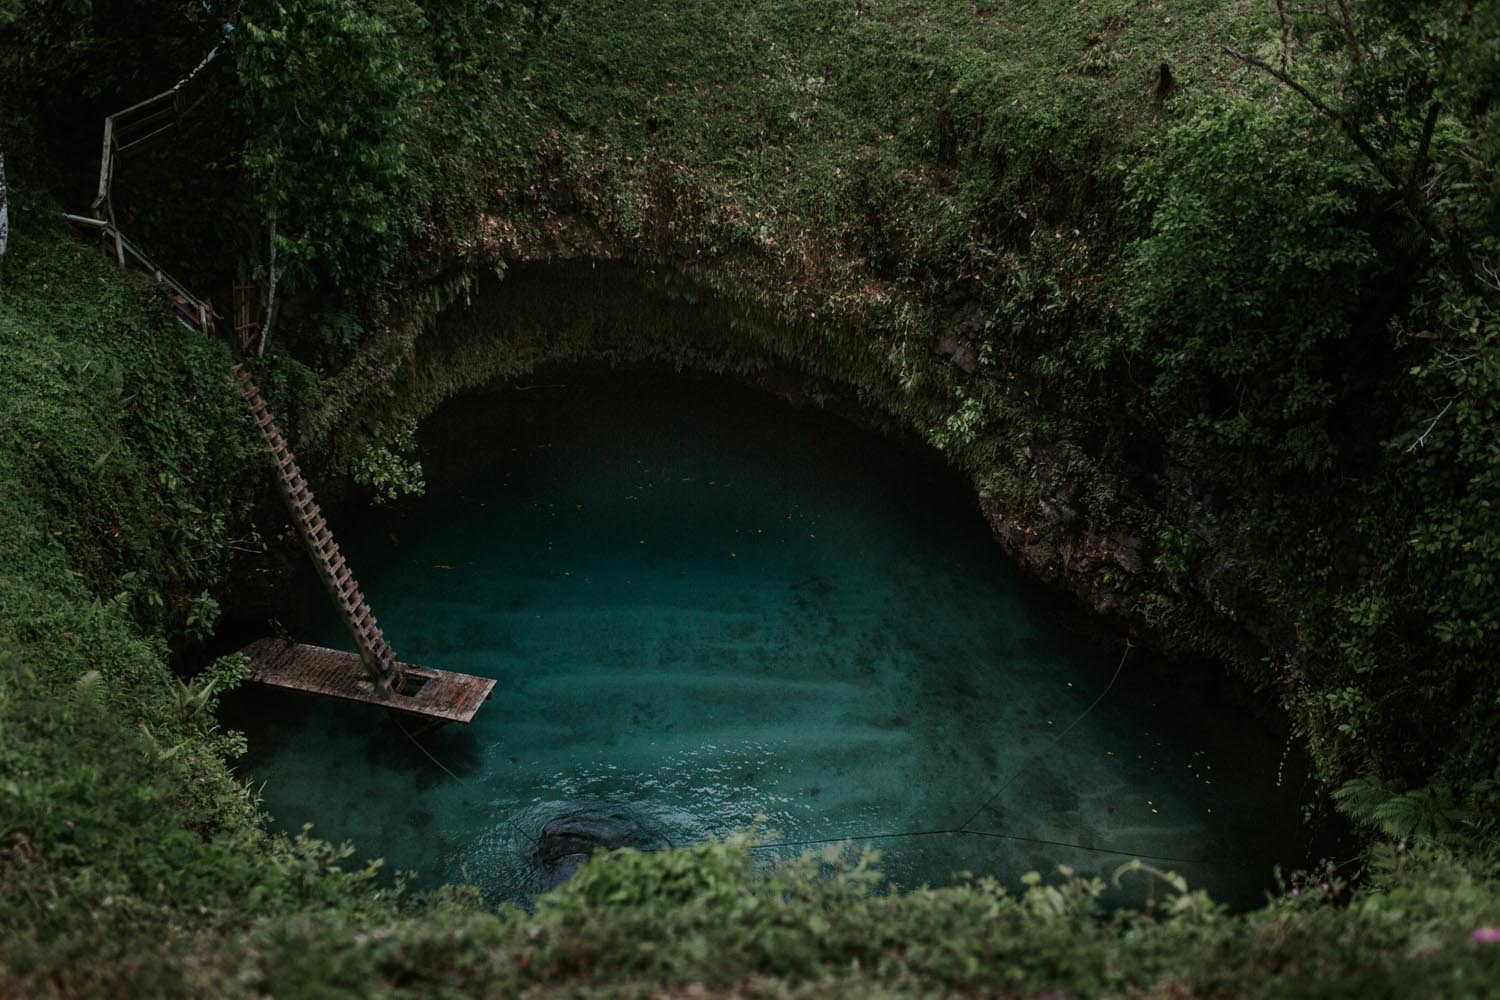 The Magical To Sua Trench